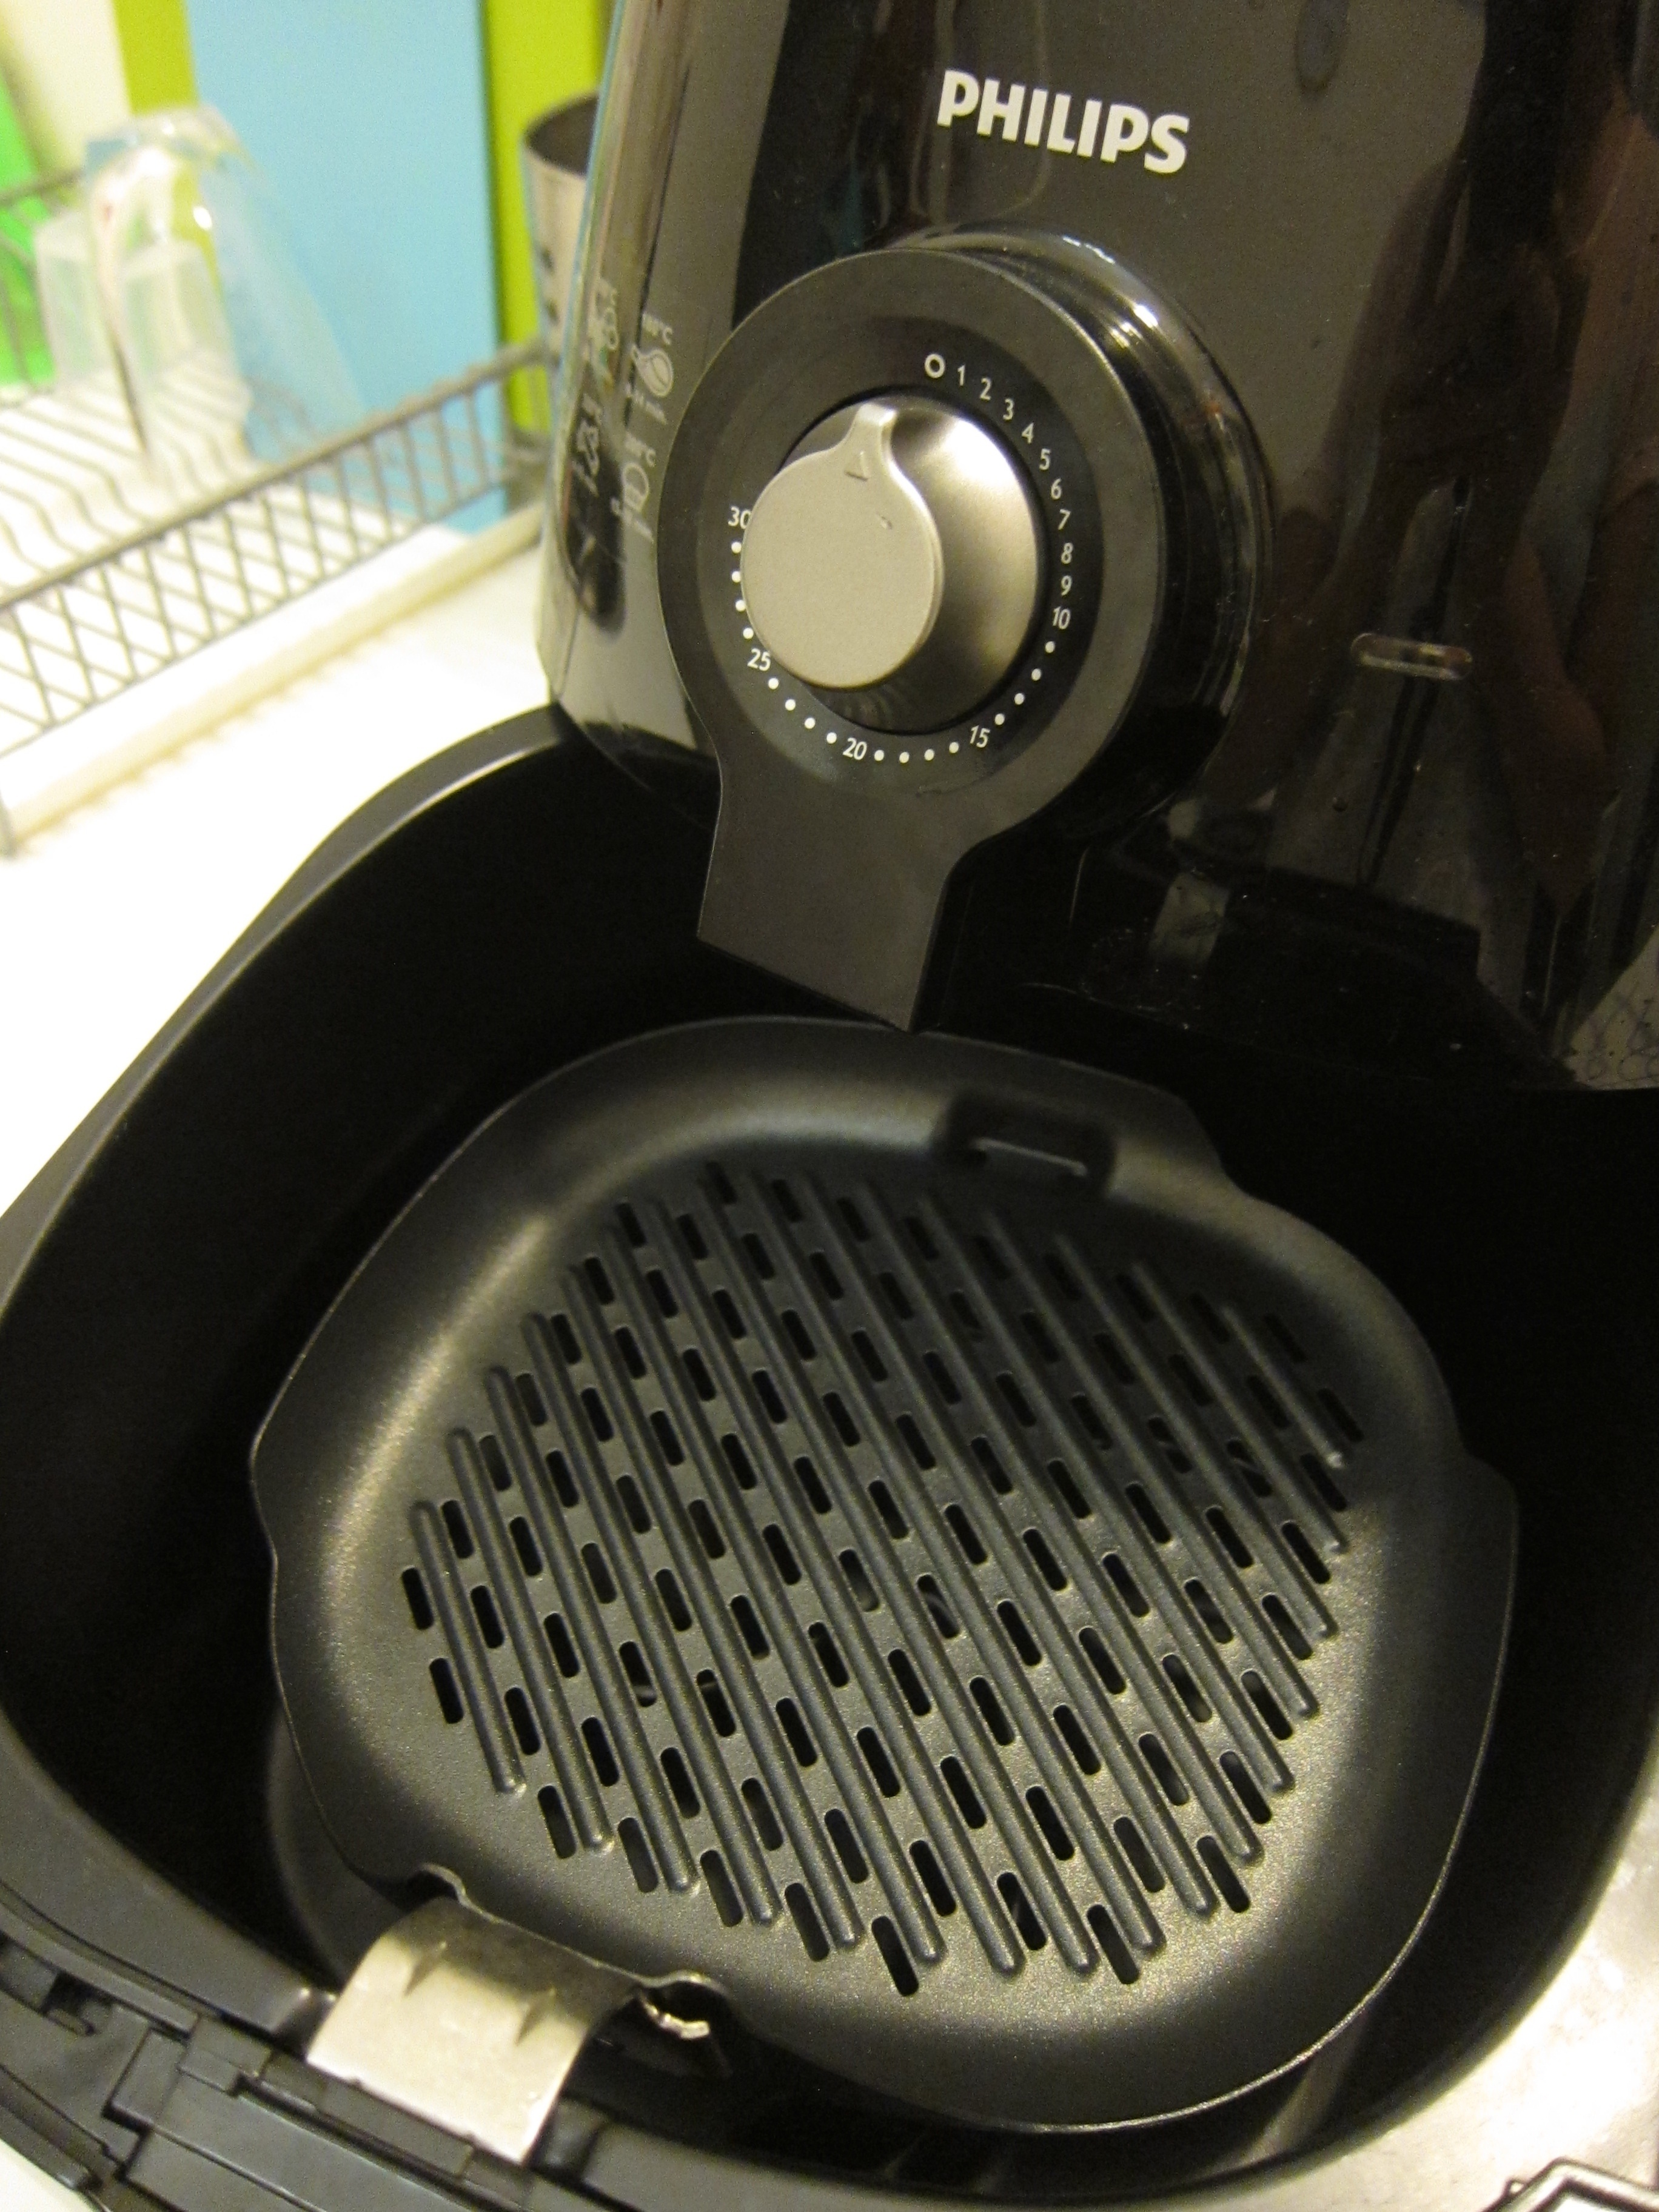 Philips Air Fryer Grill Pan